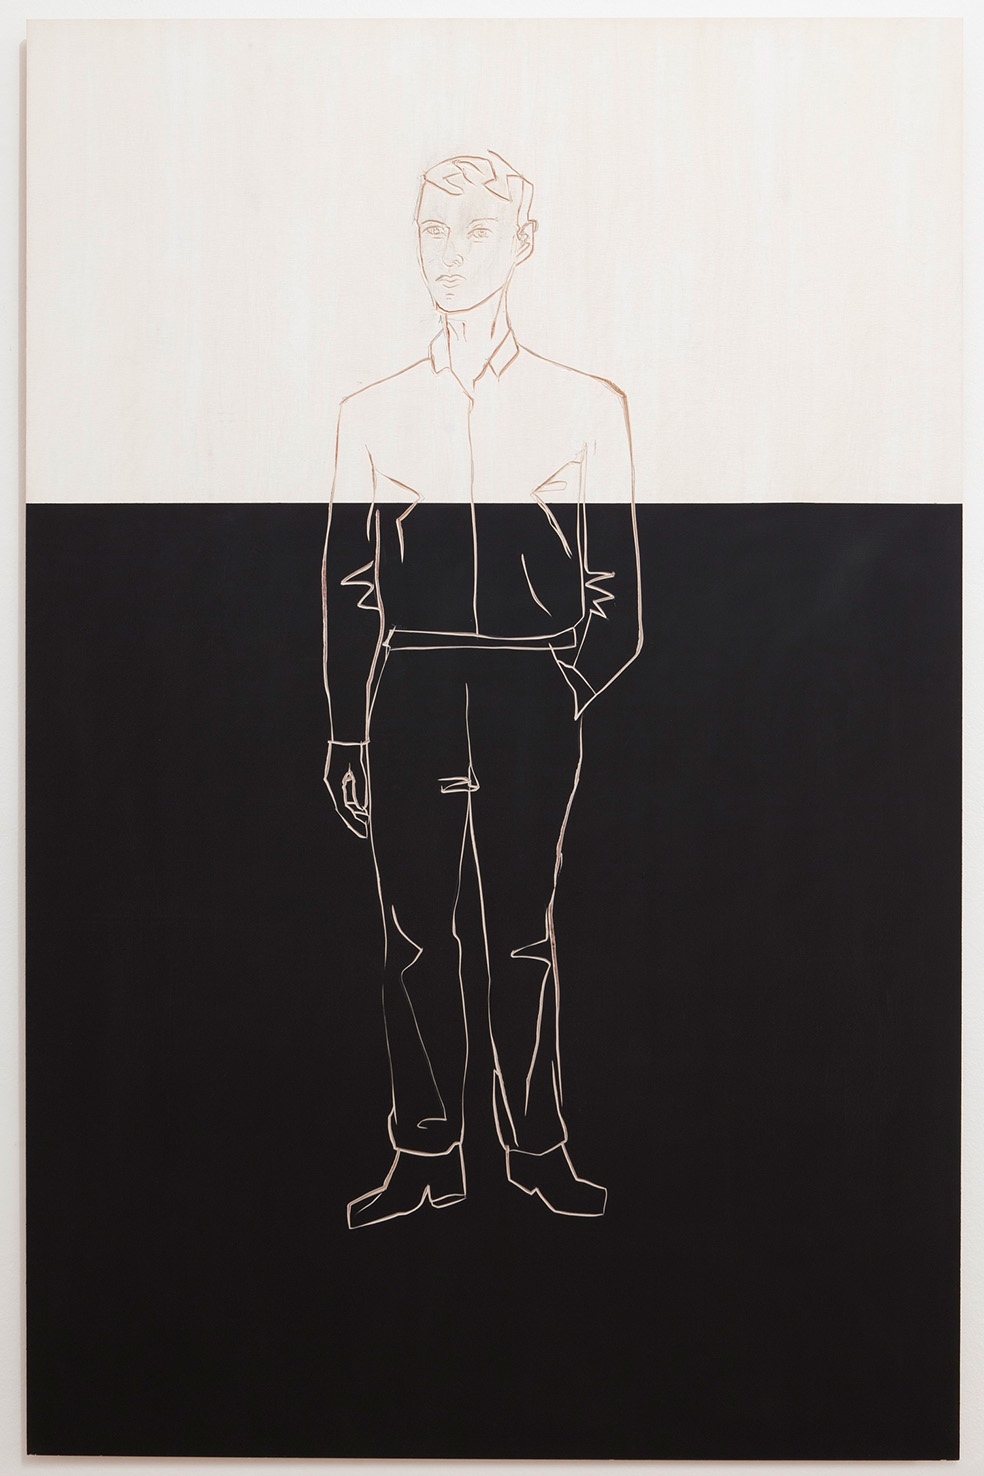 S. Balkenhol, 'Man on black and white background', 2013, compensato dipinto e intagliato © l'artista / Luce Gallery